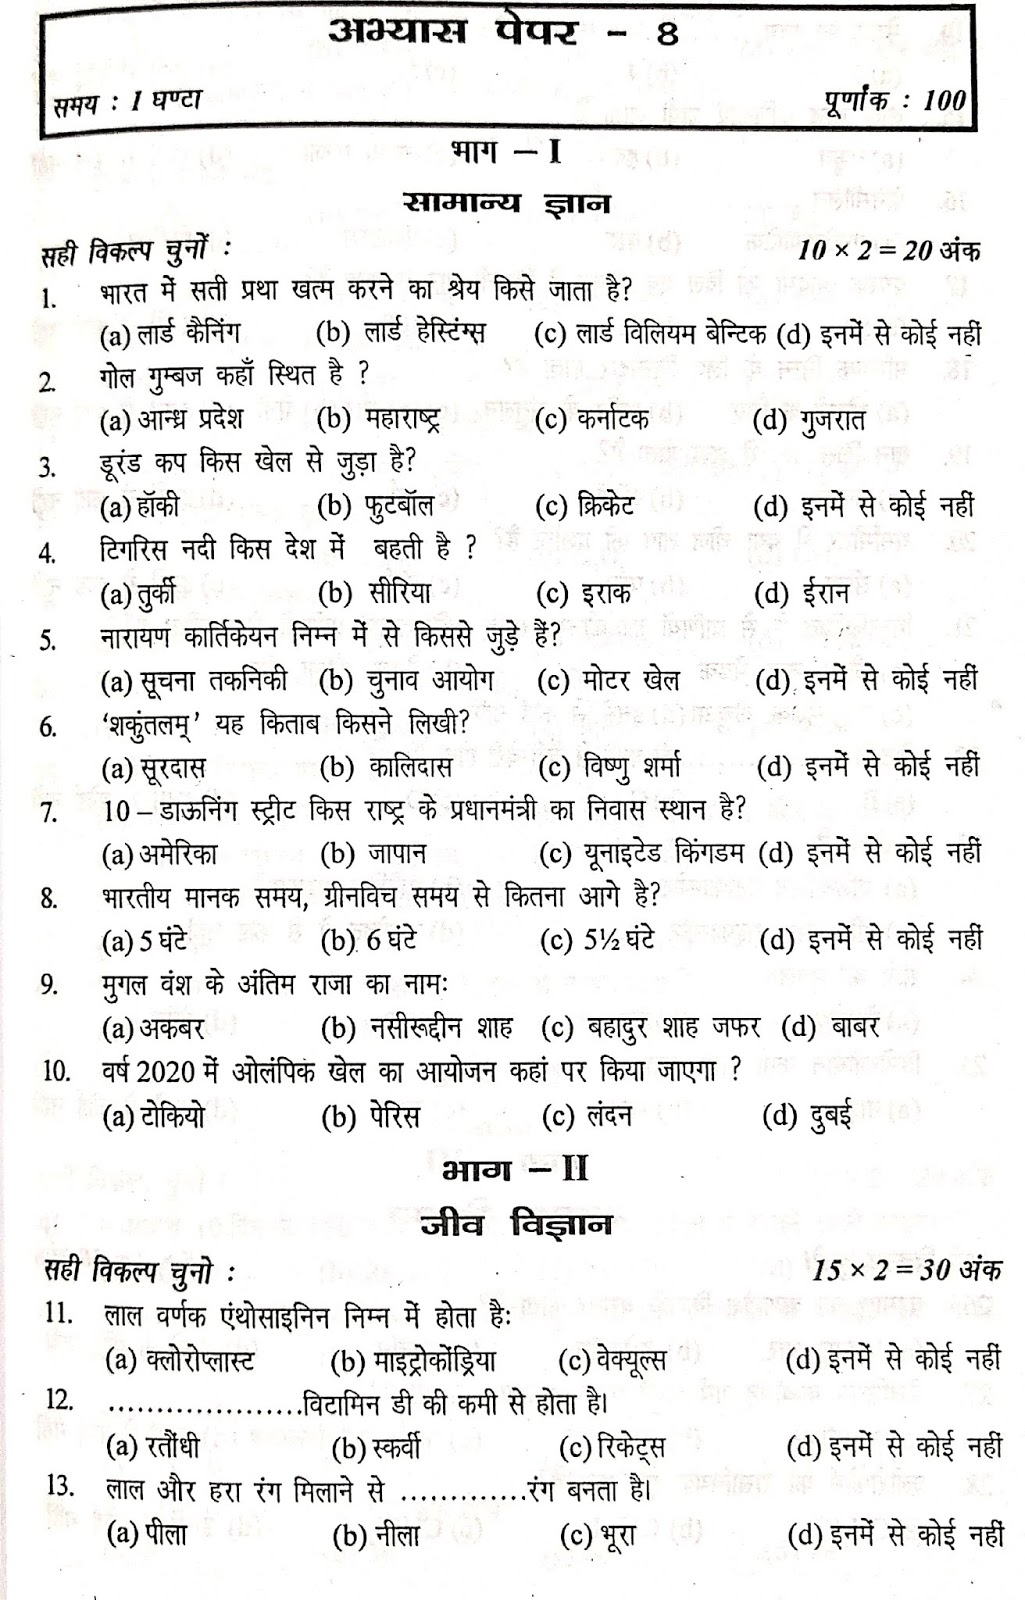 Nursing Exam Questions And Answers Pdf In Hindi